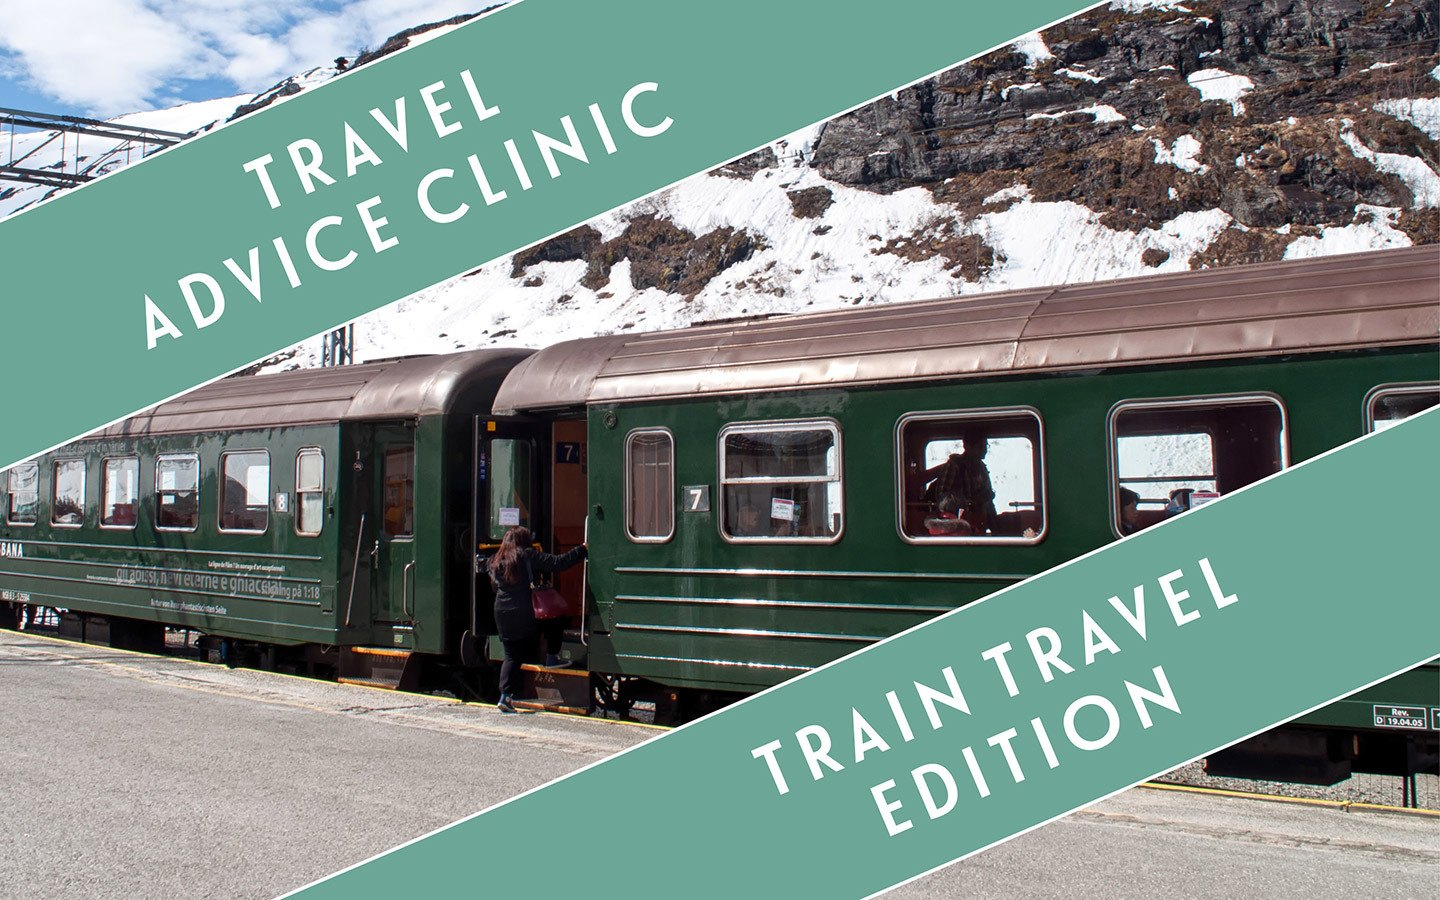 The travel clinic: Train travel edition